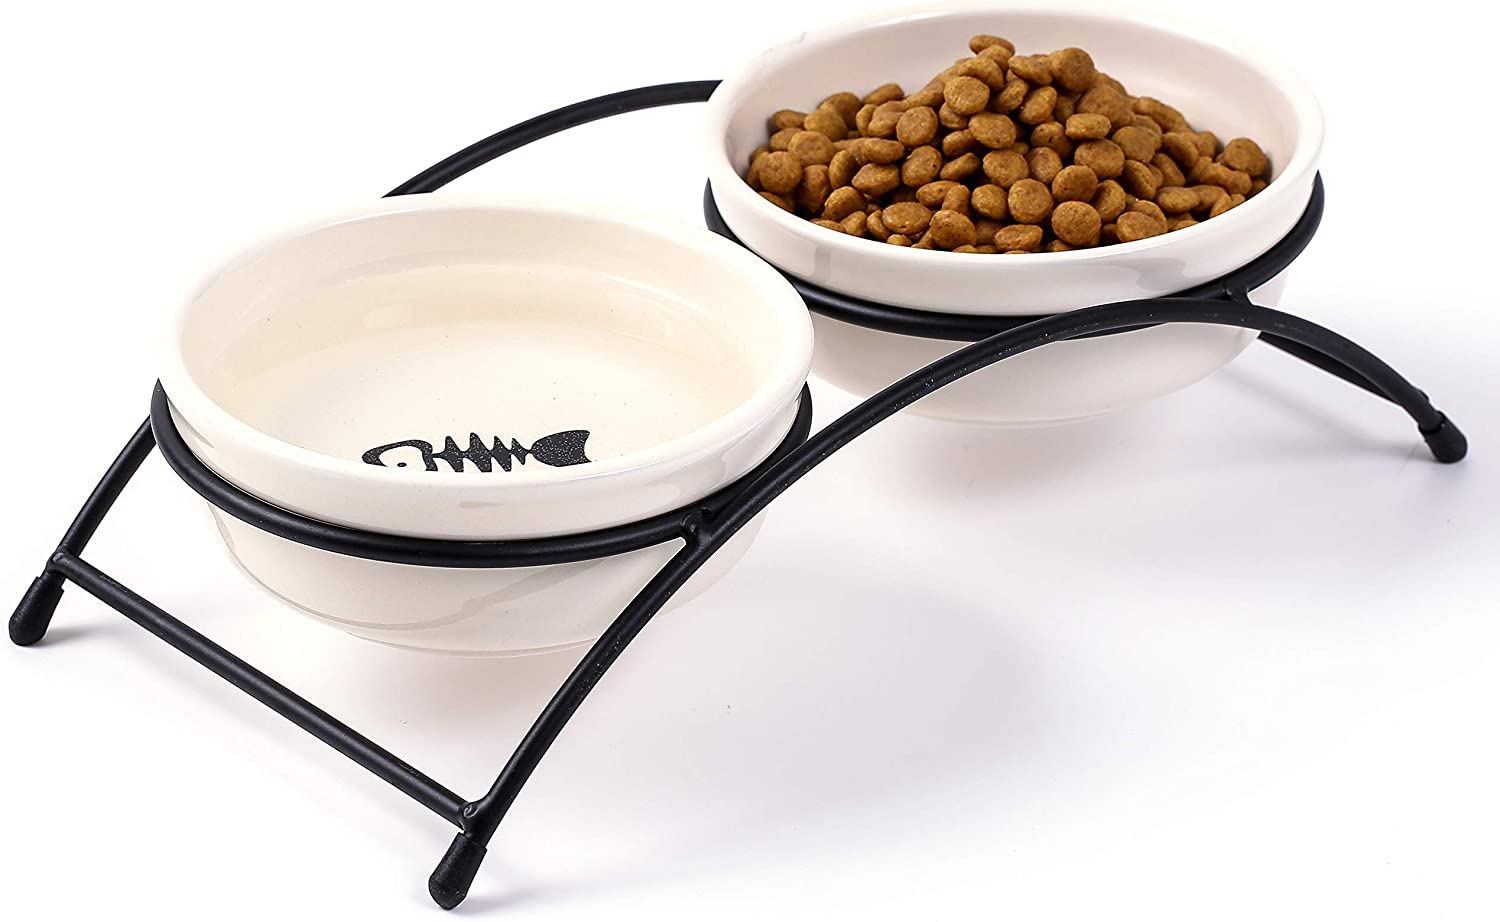 JanYoo Ceramic Cat Bowls Food Feeding Stand Elevated Dog Bowl Outdoor Non-Skid